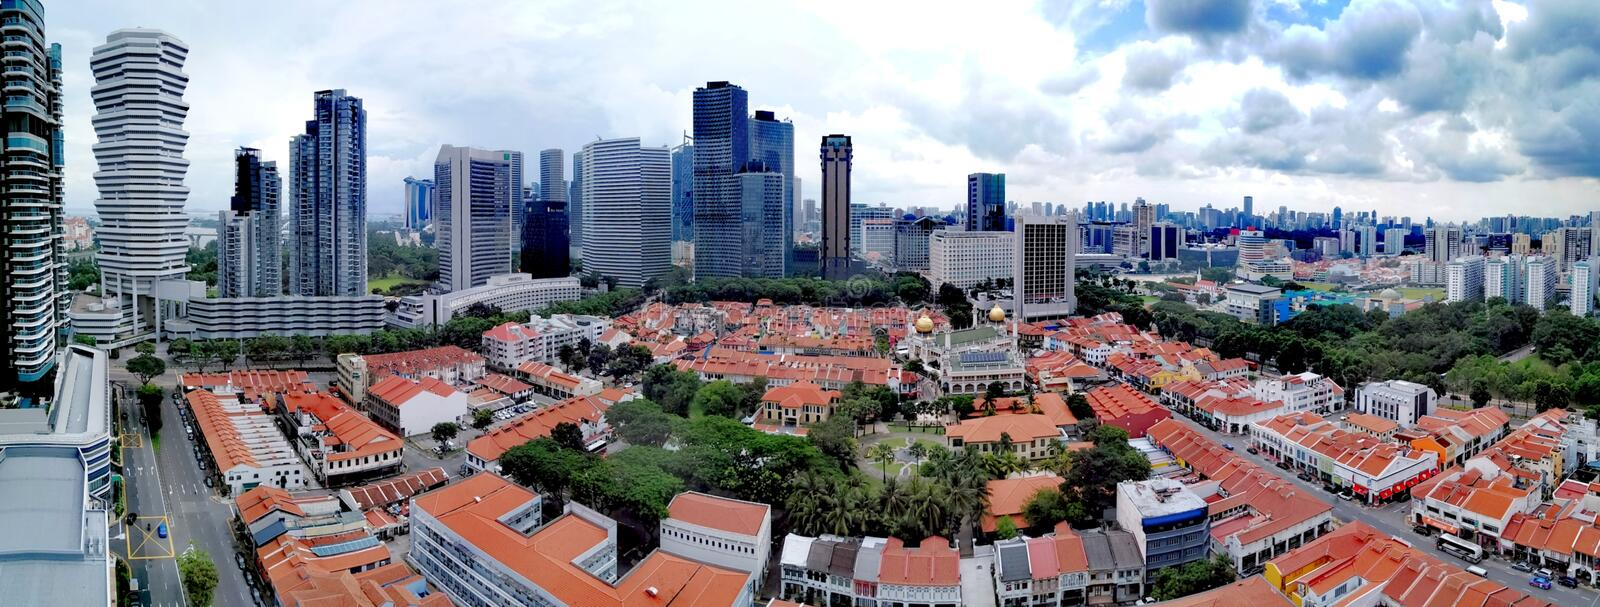 Panorama of Singapore downtown. Featuring Beach Road and Bugis Village area, sultan, masjid, mosque, malay, muslim, kampong, kampung, historical, district stock photo